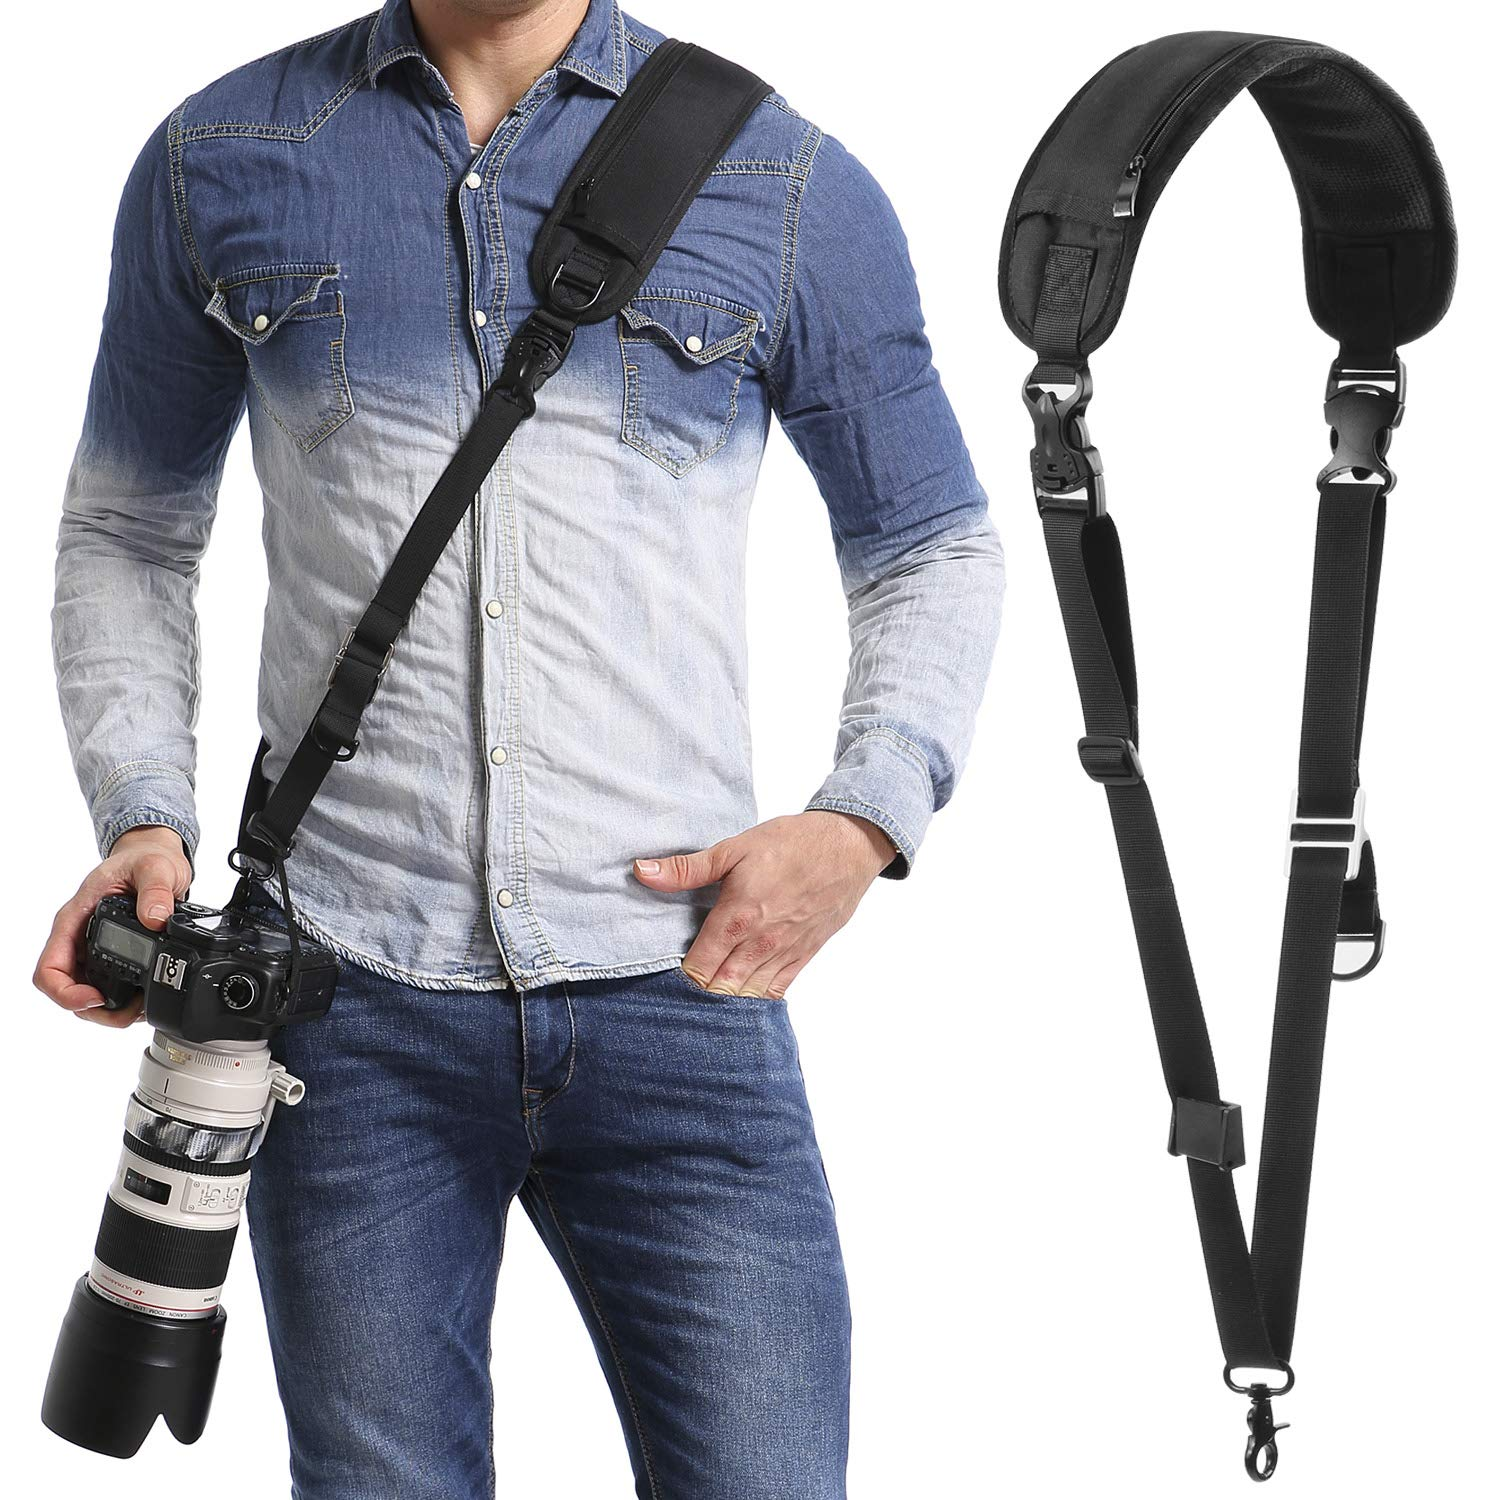 waka Camera Neck Strap with Quick Release and Safety Tether, Adjustable Camera Shoulder Sling Strap for Nikon Canon Sony Olympus DSLR Camera - Black by waka